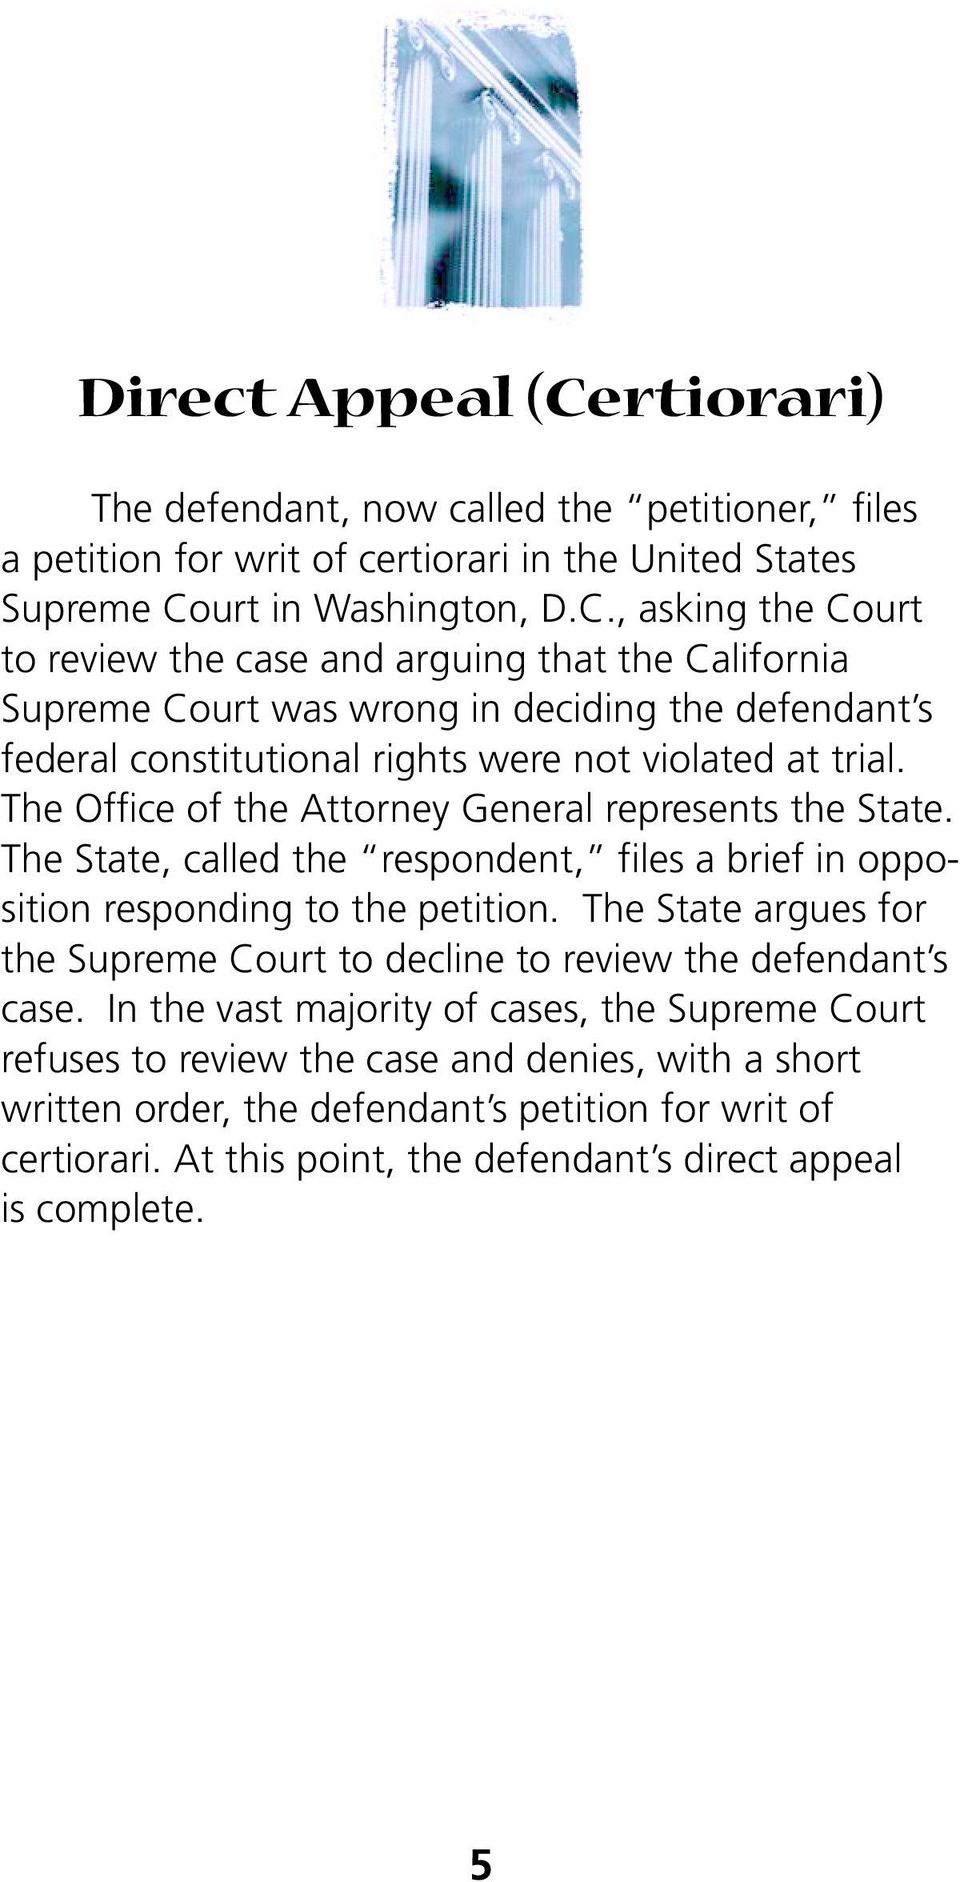 The State argues for the Supreme Court to decline to review the defendant s case.